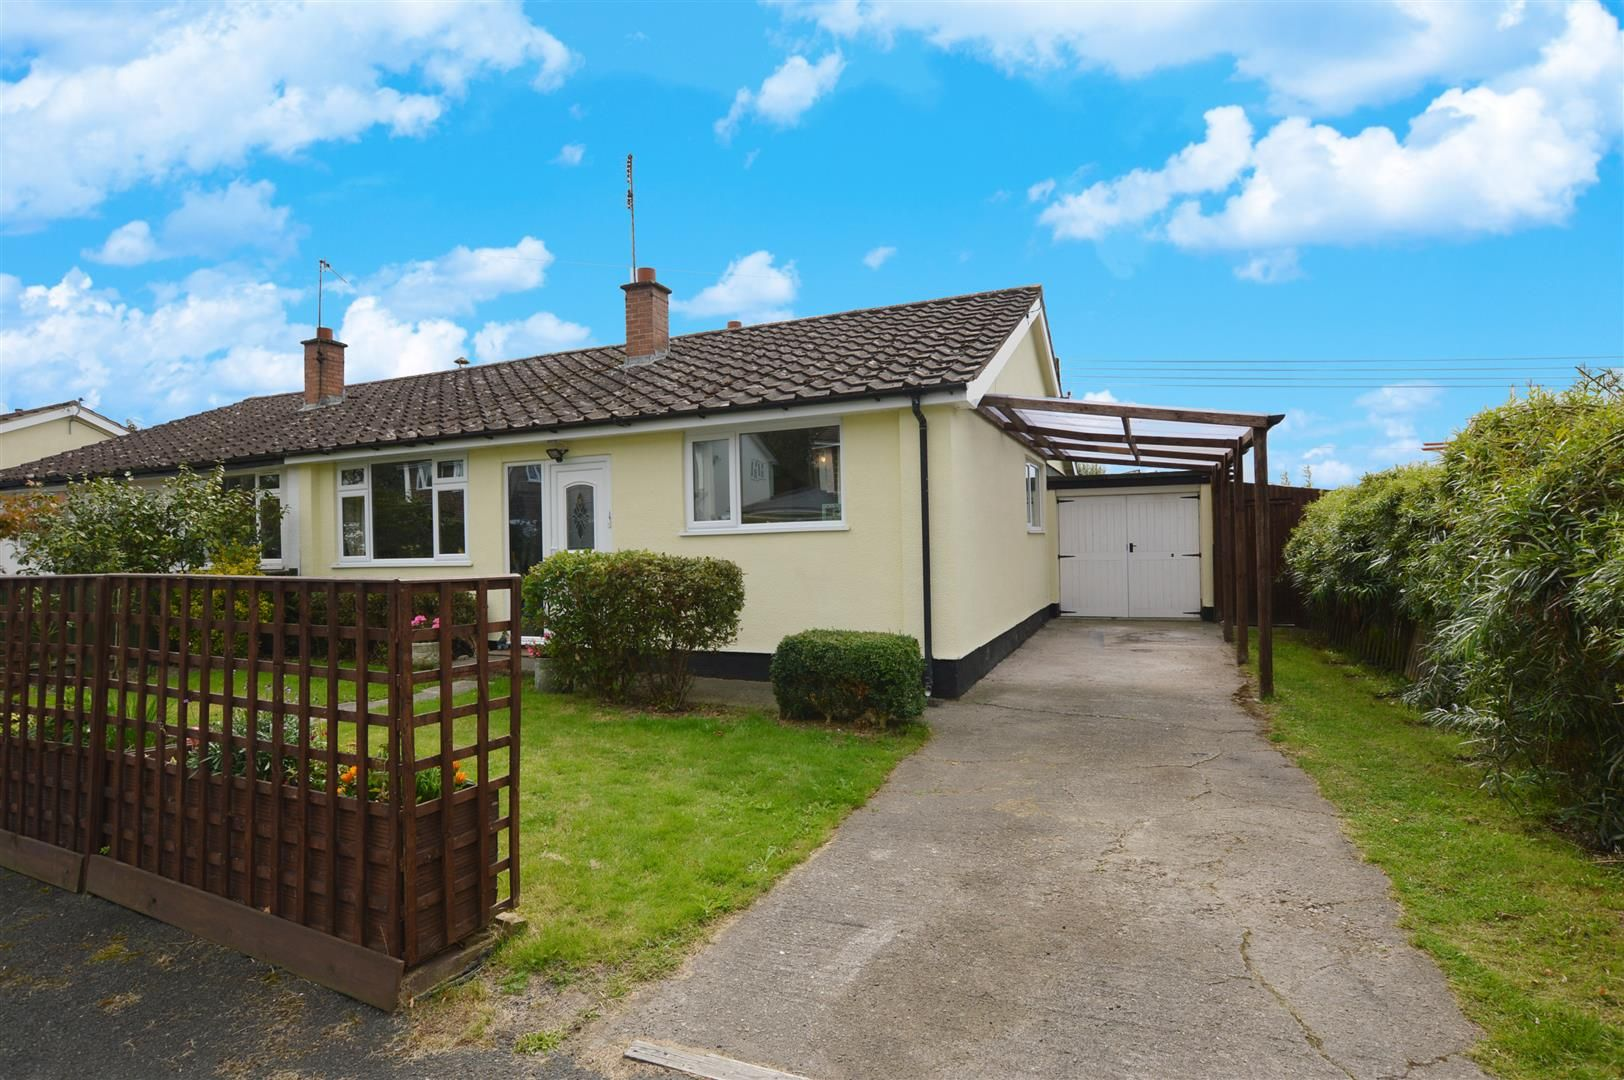 3 bed semi-detached-bungalow for sale in Shobdon  - Property Image 1